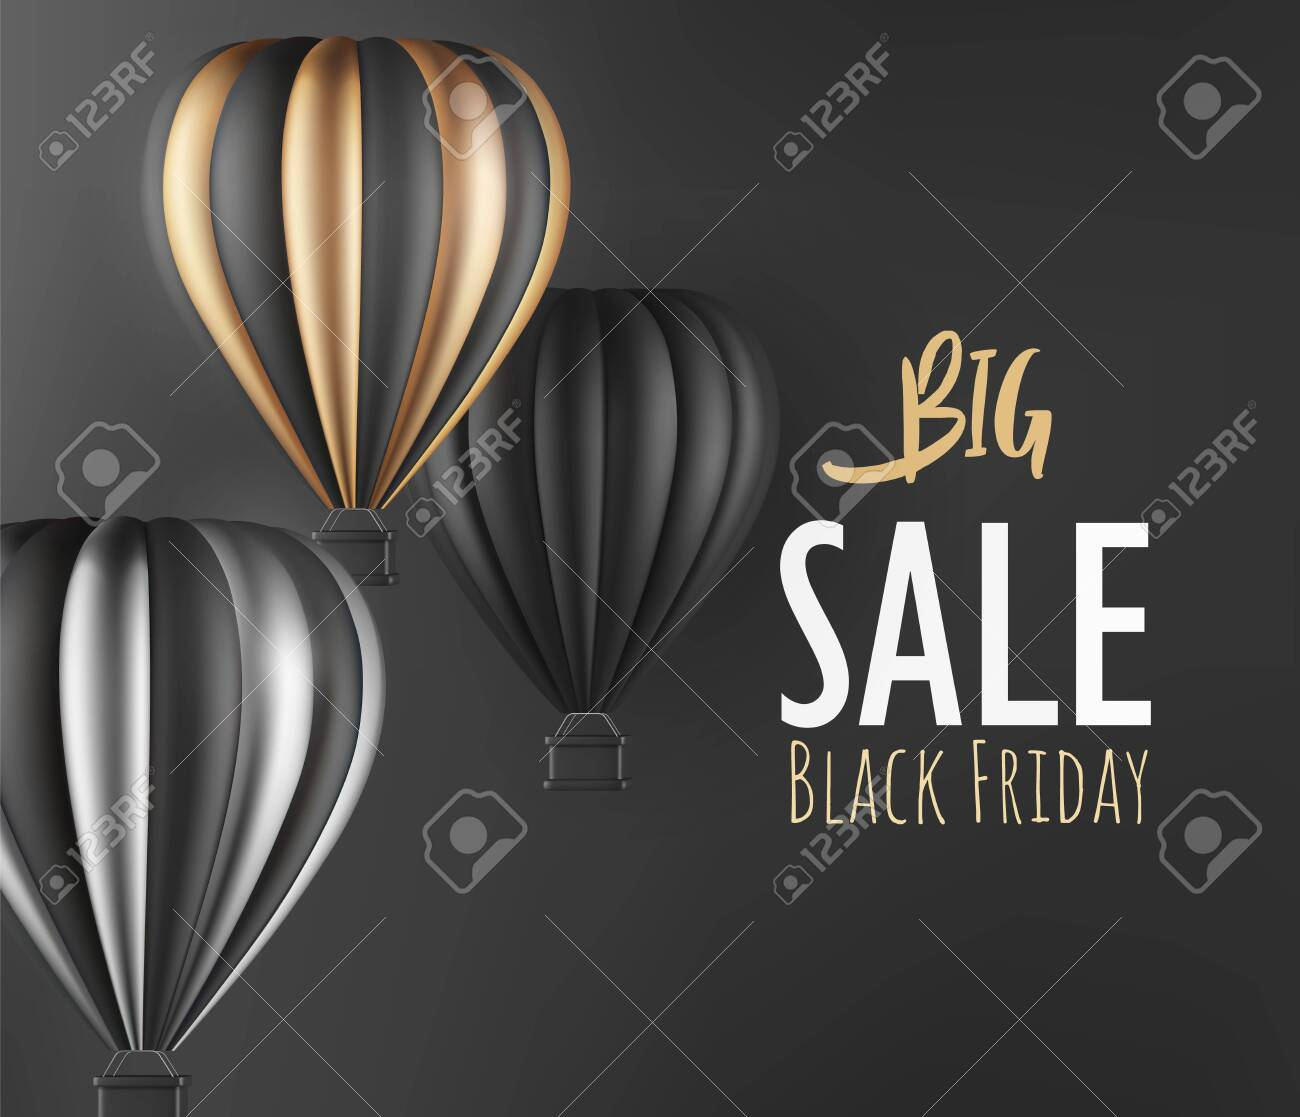 Realistic hot air balloon black gold and silver finish for black Friday flyer or banner template. Vector illustration - 135045494